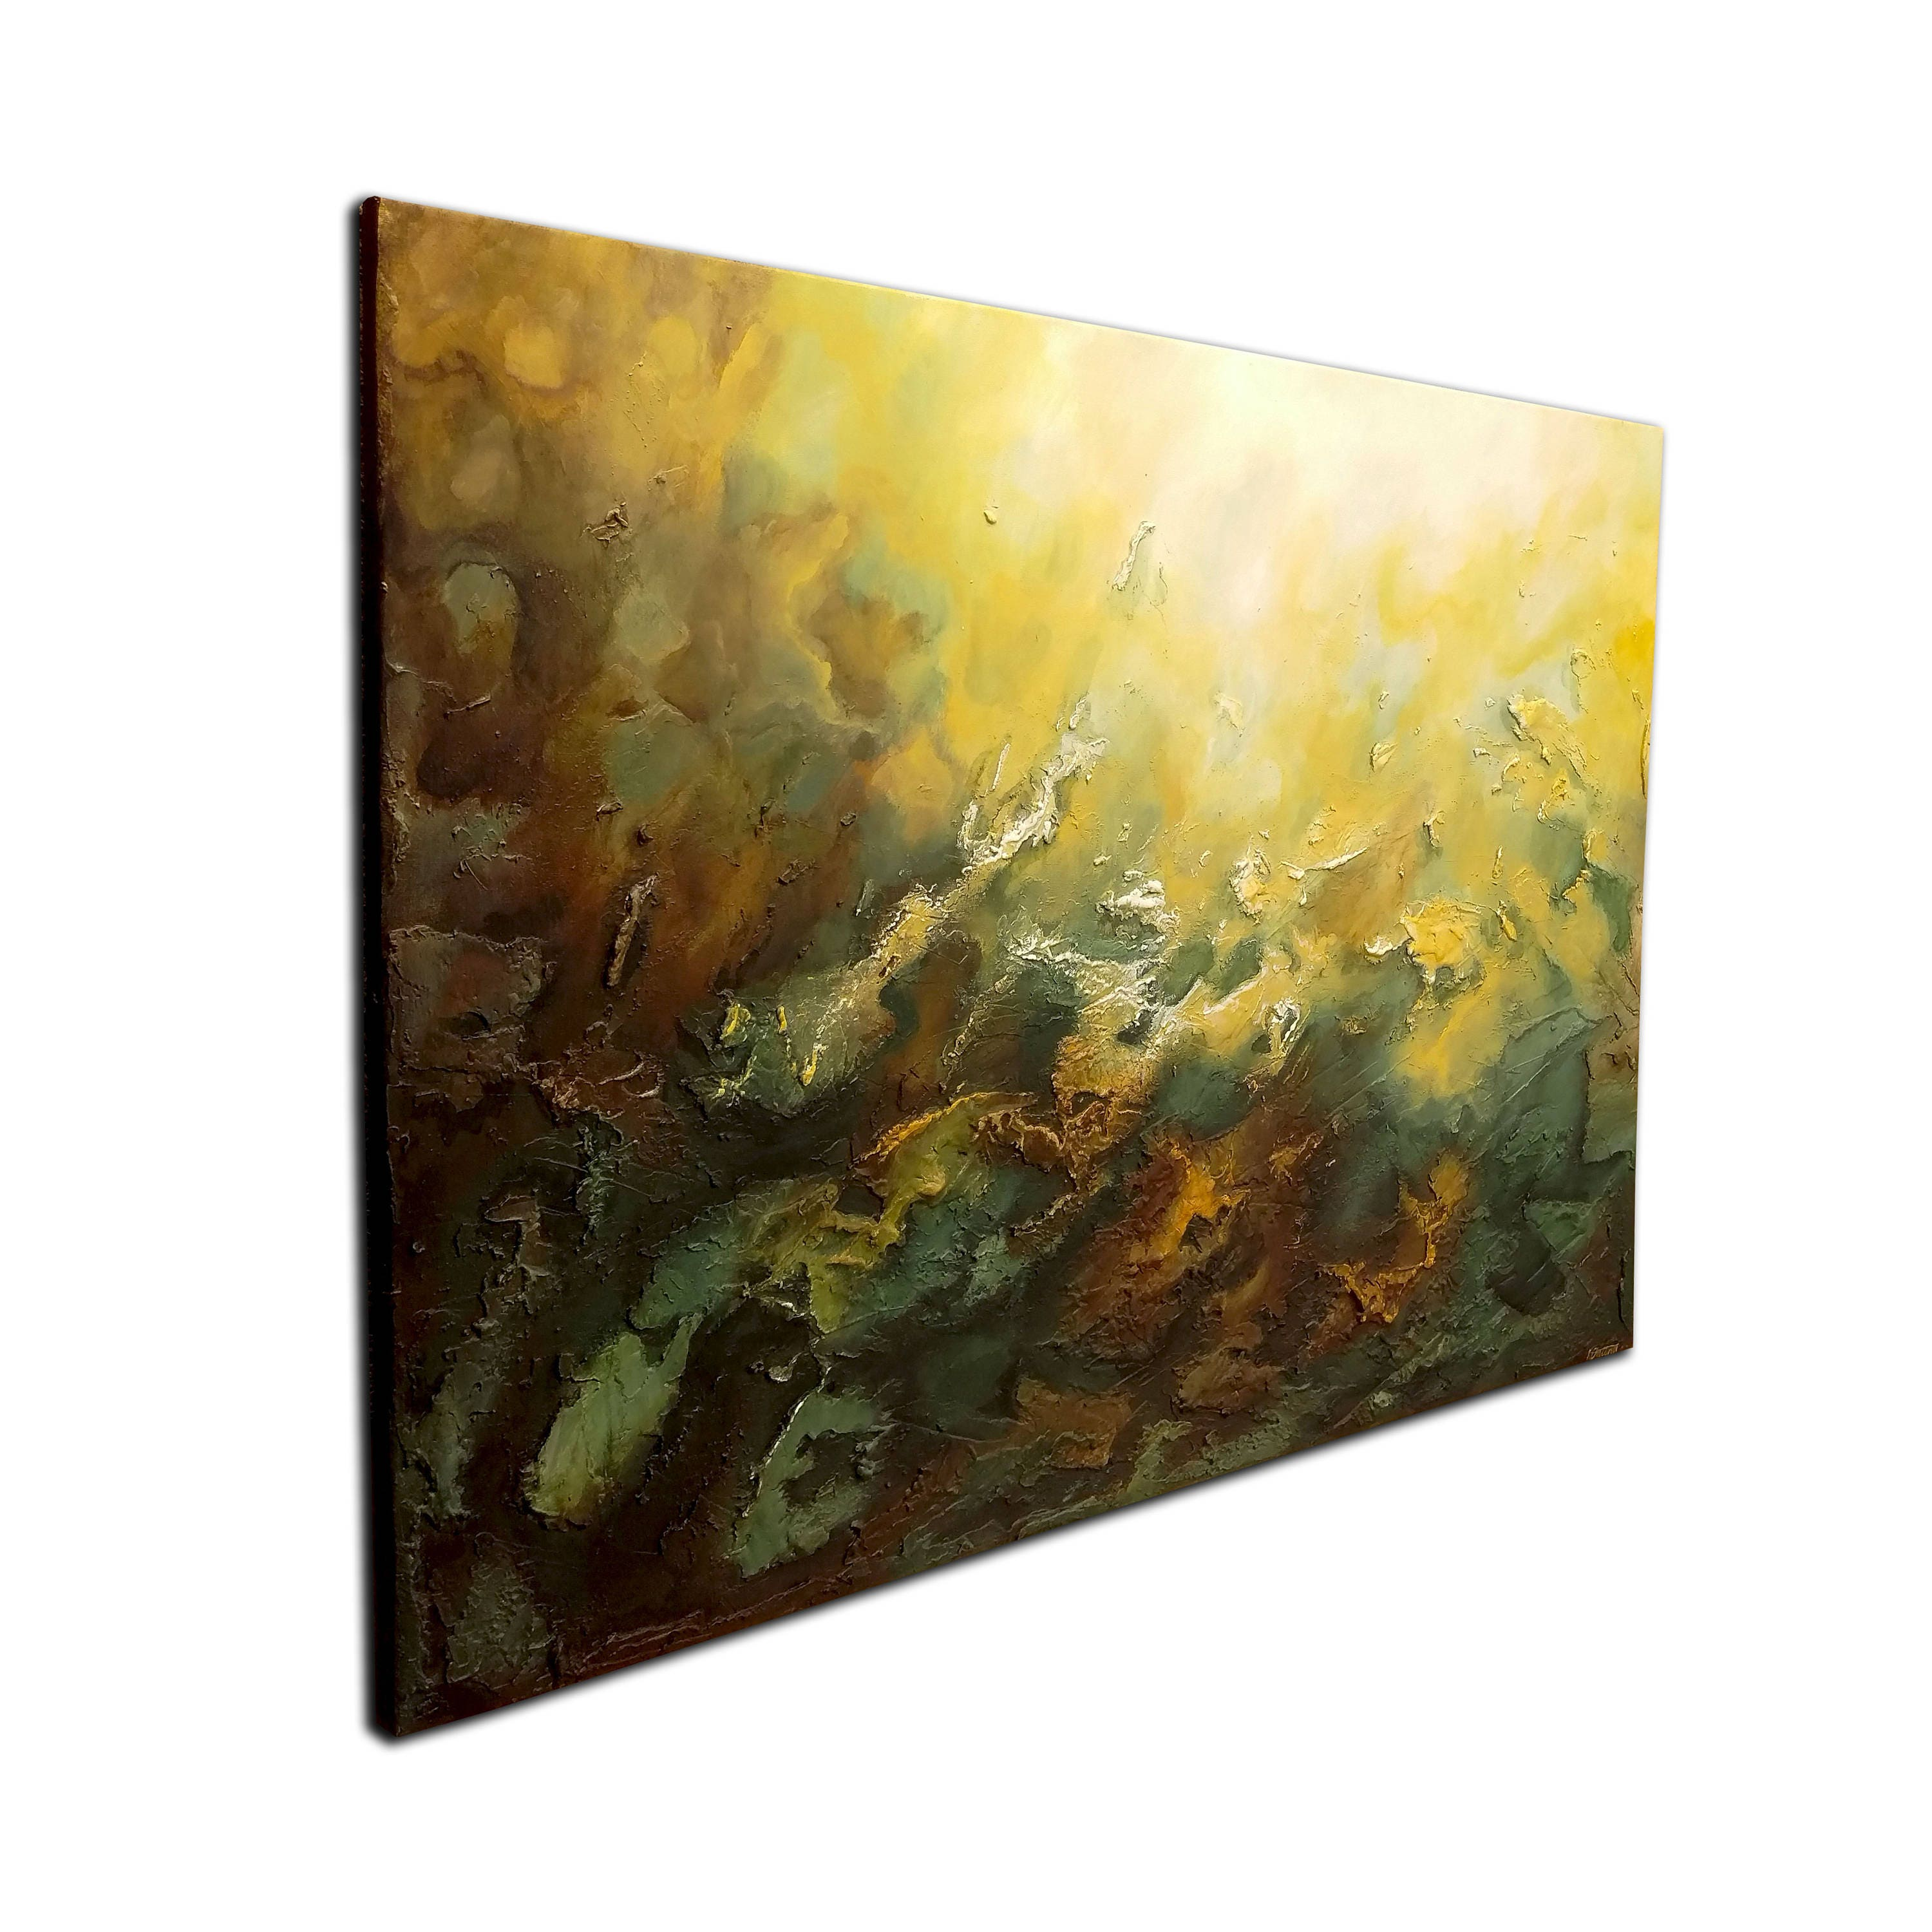 40 LARGE, Original ABSTRACT Textured PAINTING, canvas, Wall Art ...